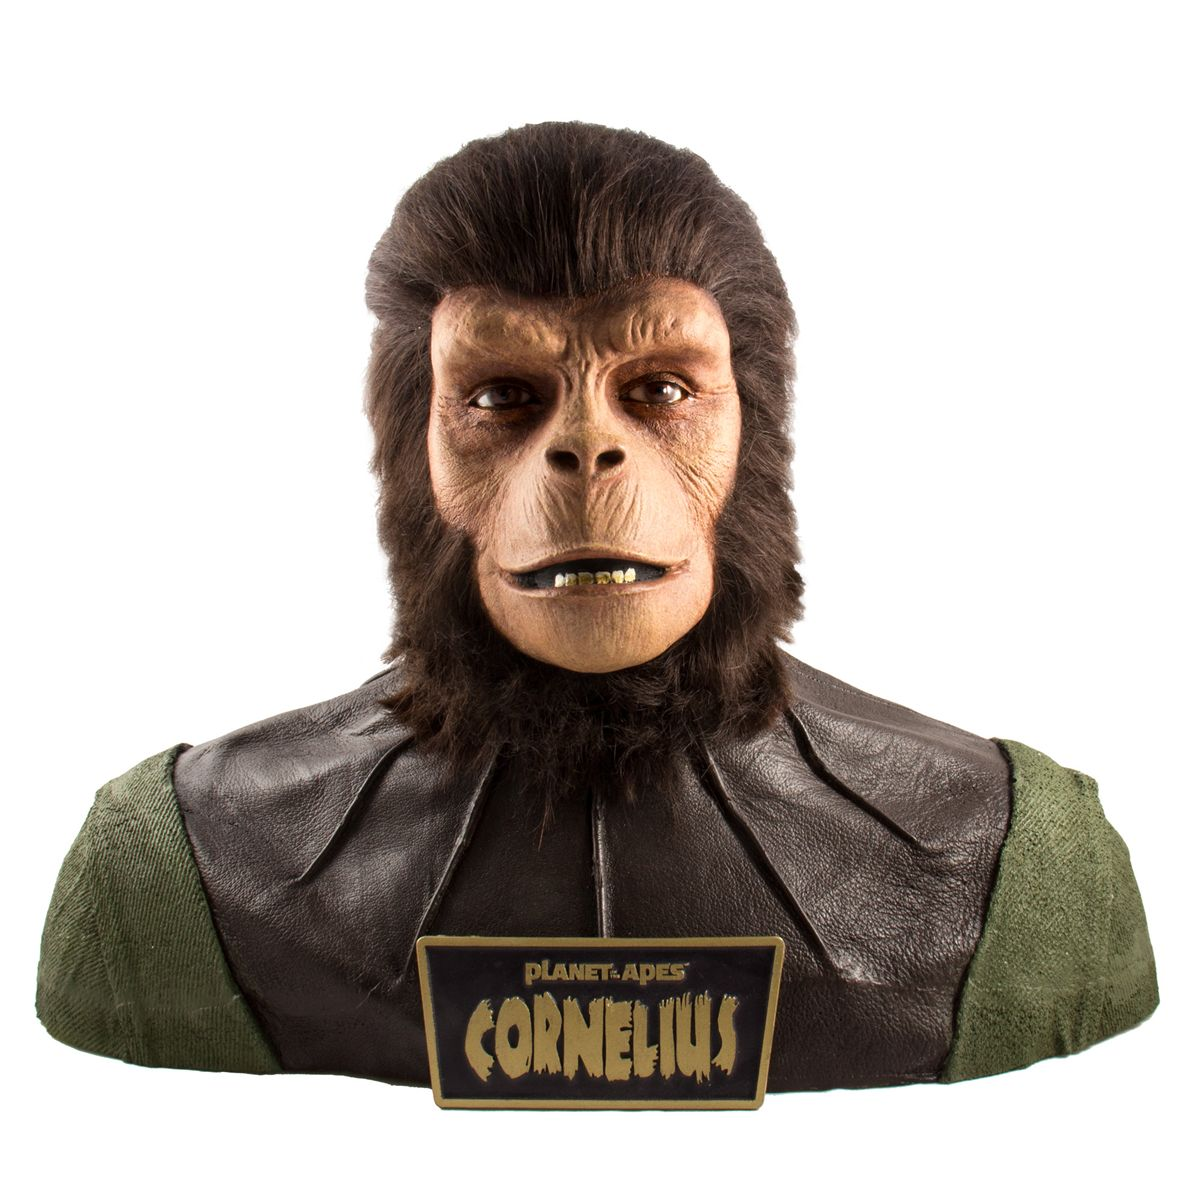 Planet of the Apes Cornelius Life-Size Bust